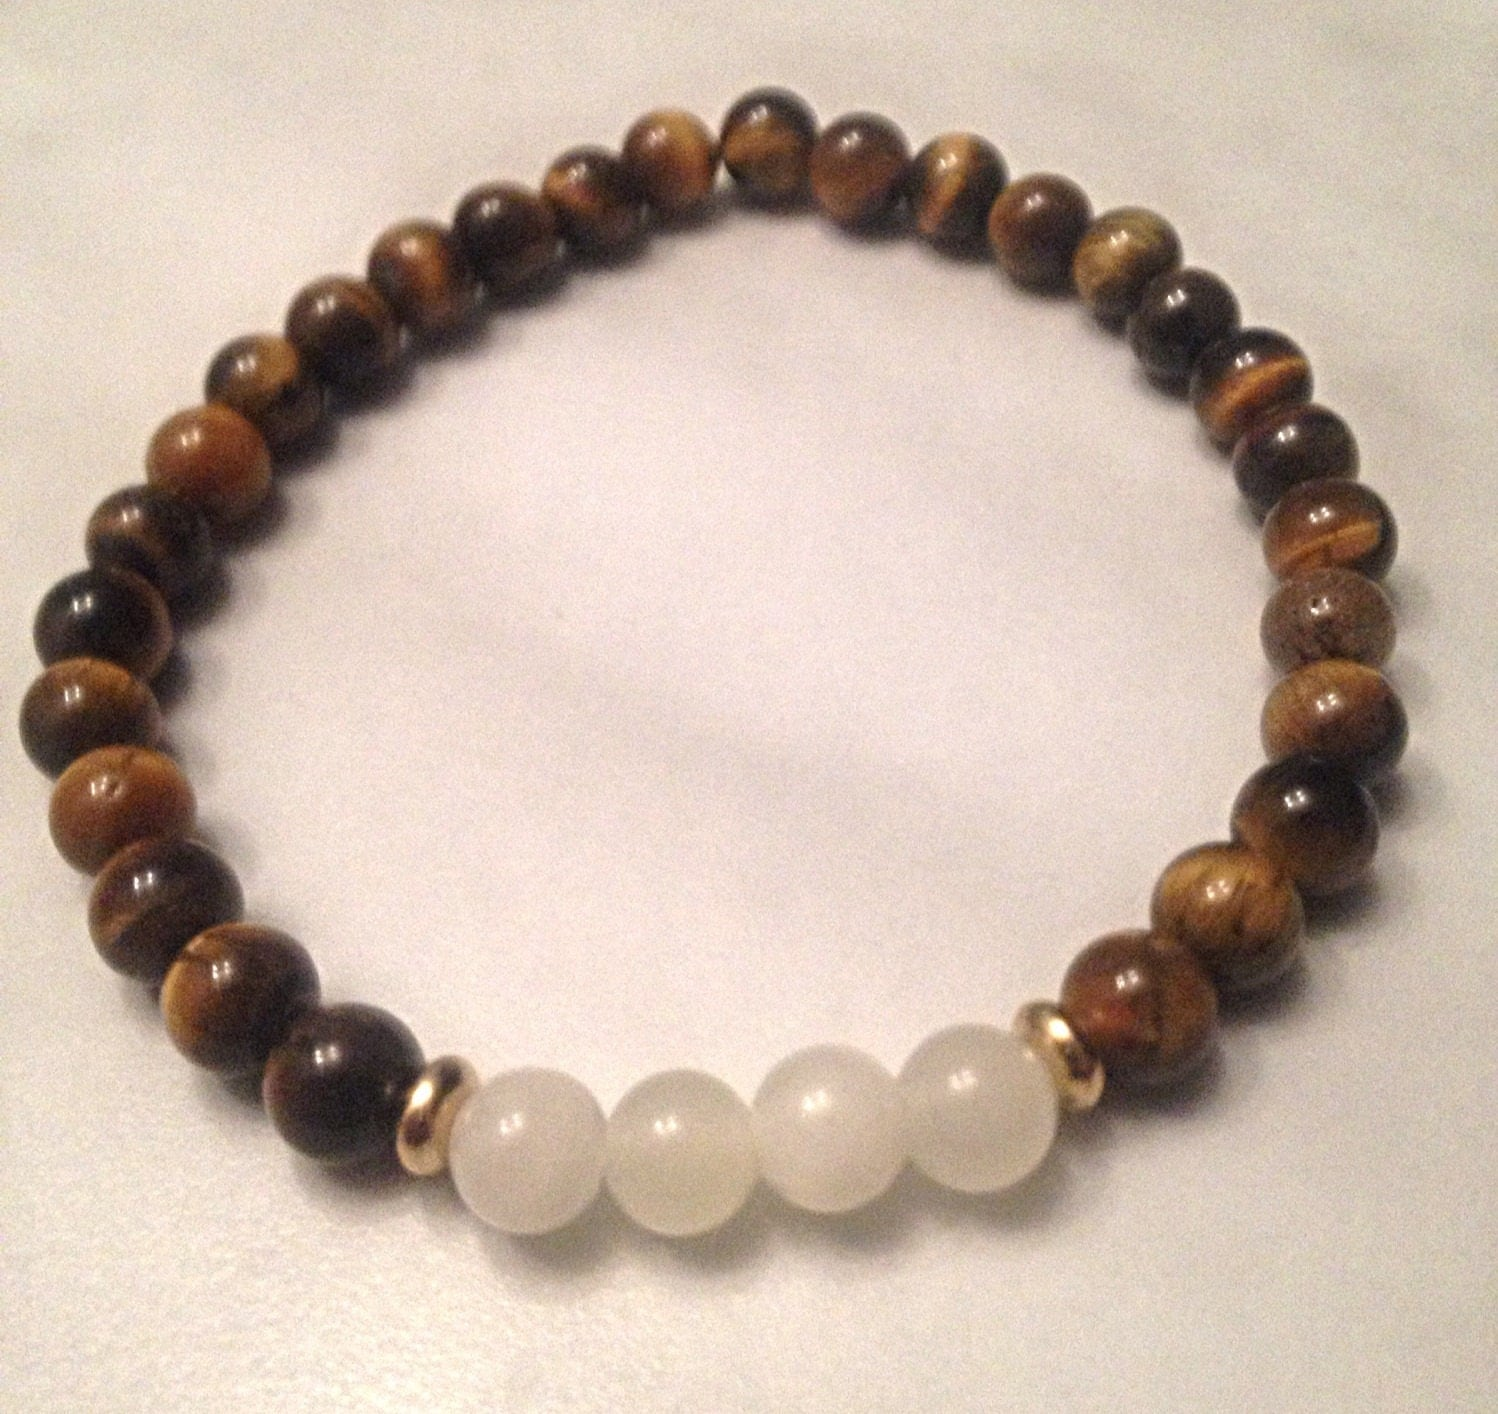 Find great deals on eBay for mens beaded bracelet. Shop with confidence.